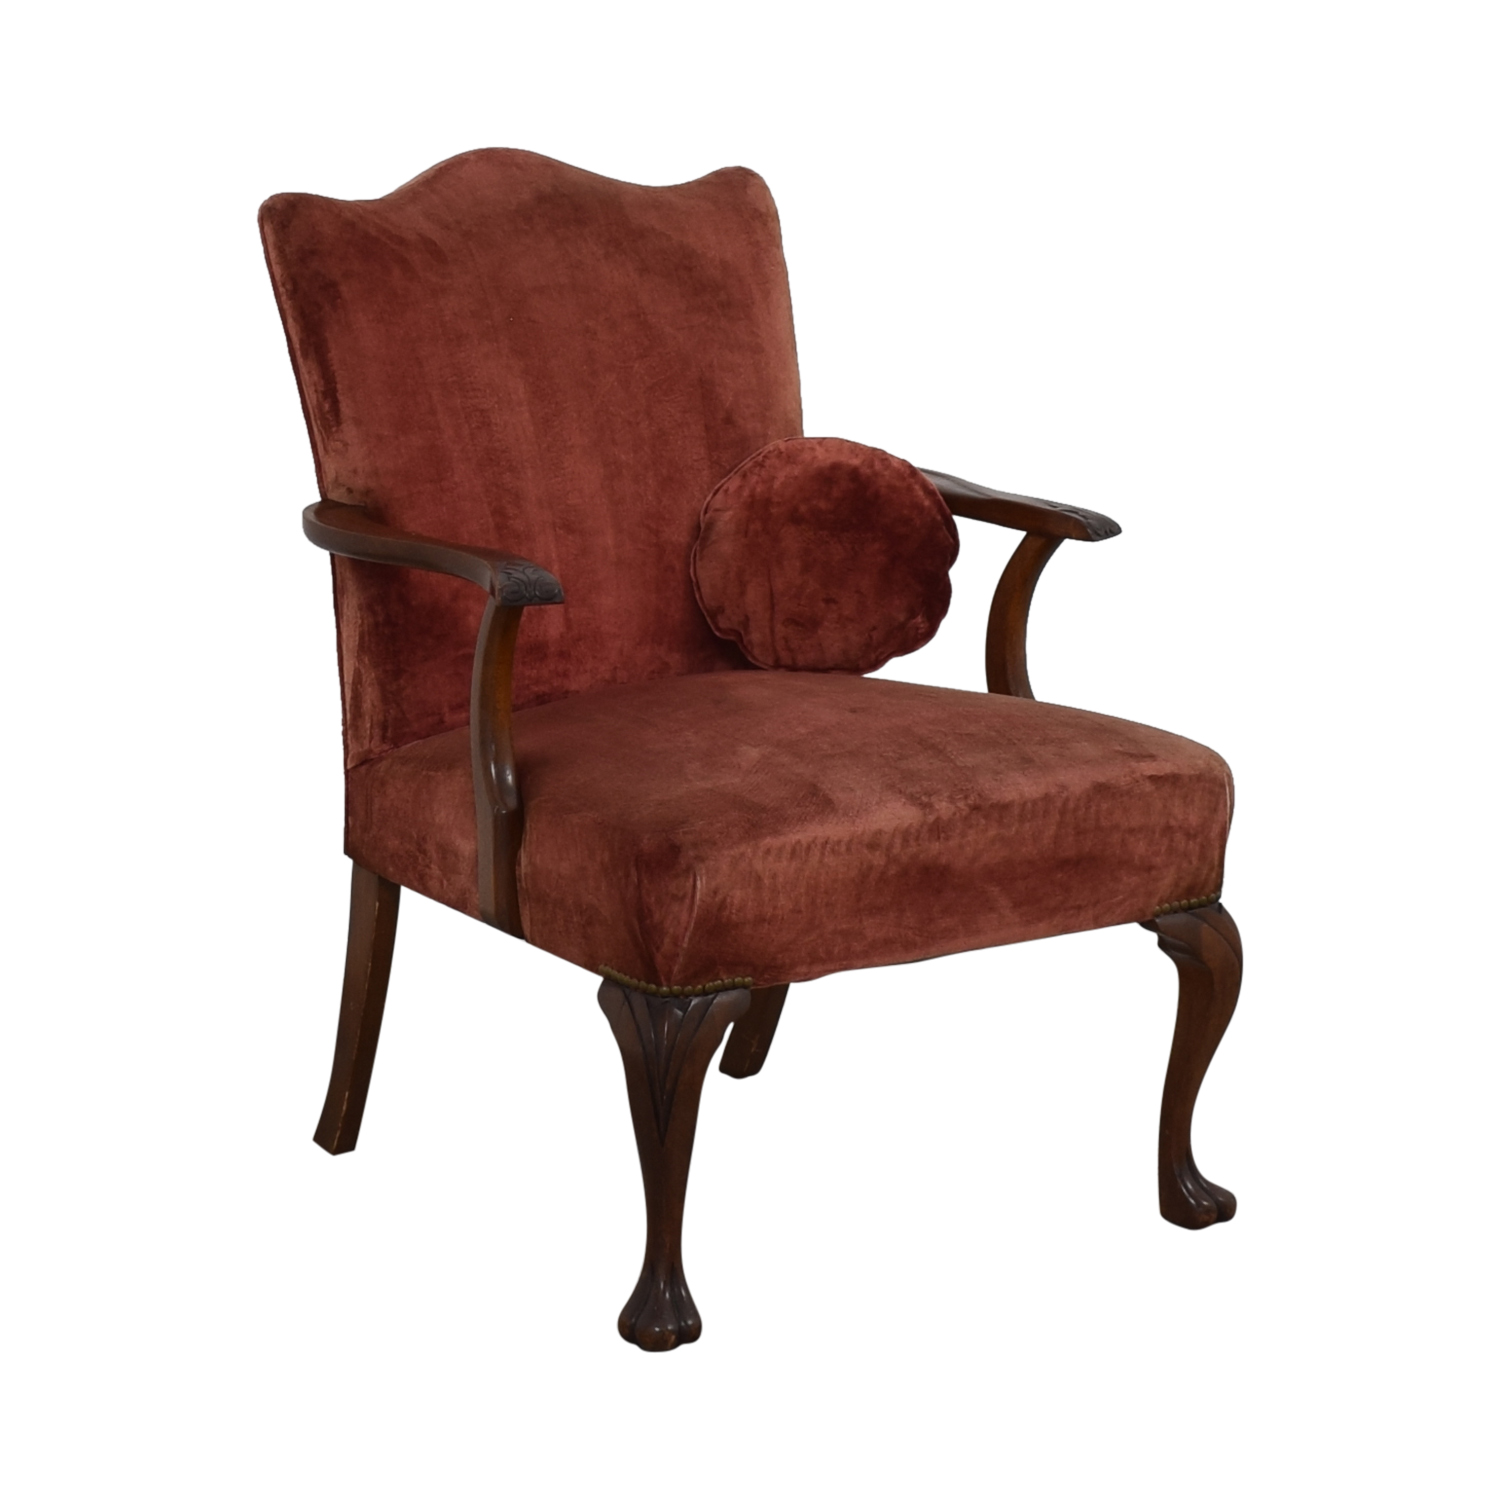 Antique Curved Back Armchair Chairs